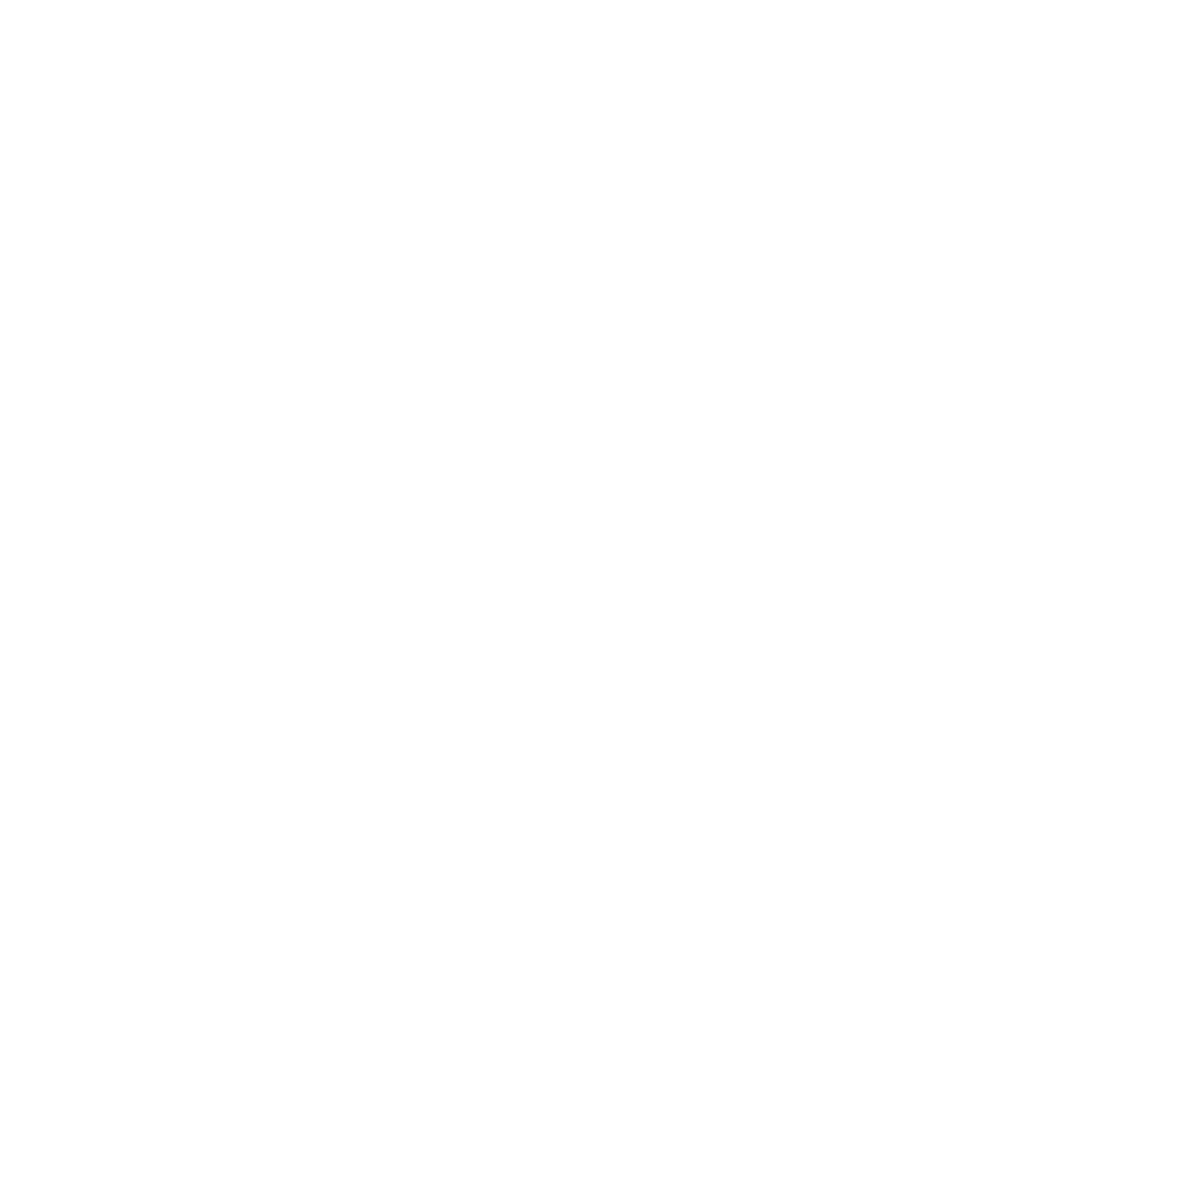 checked list symbol